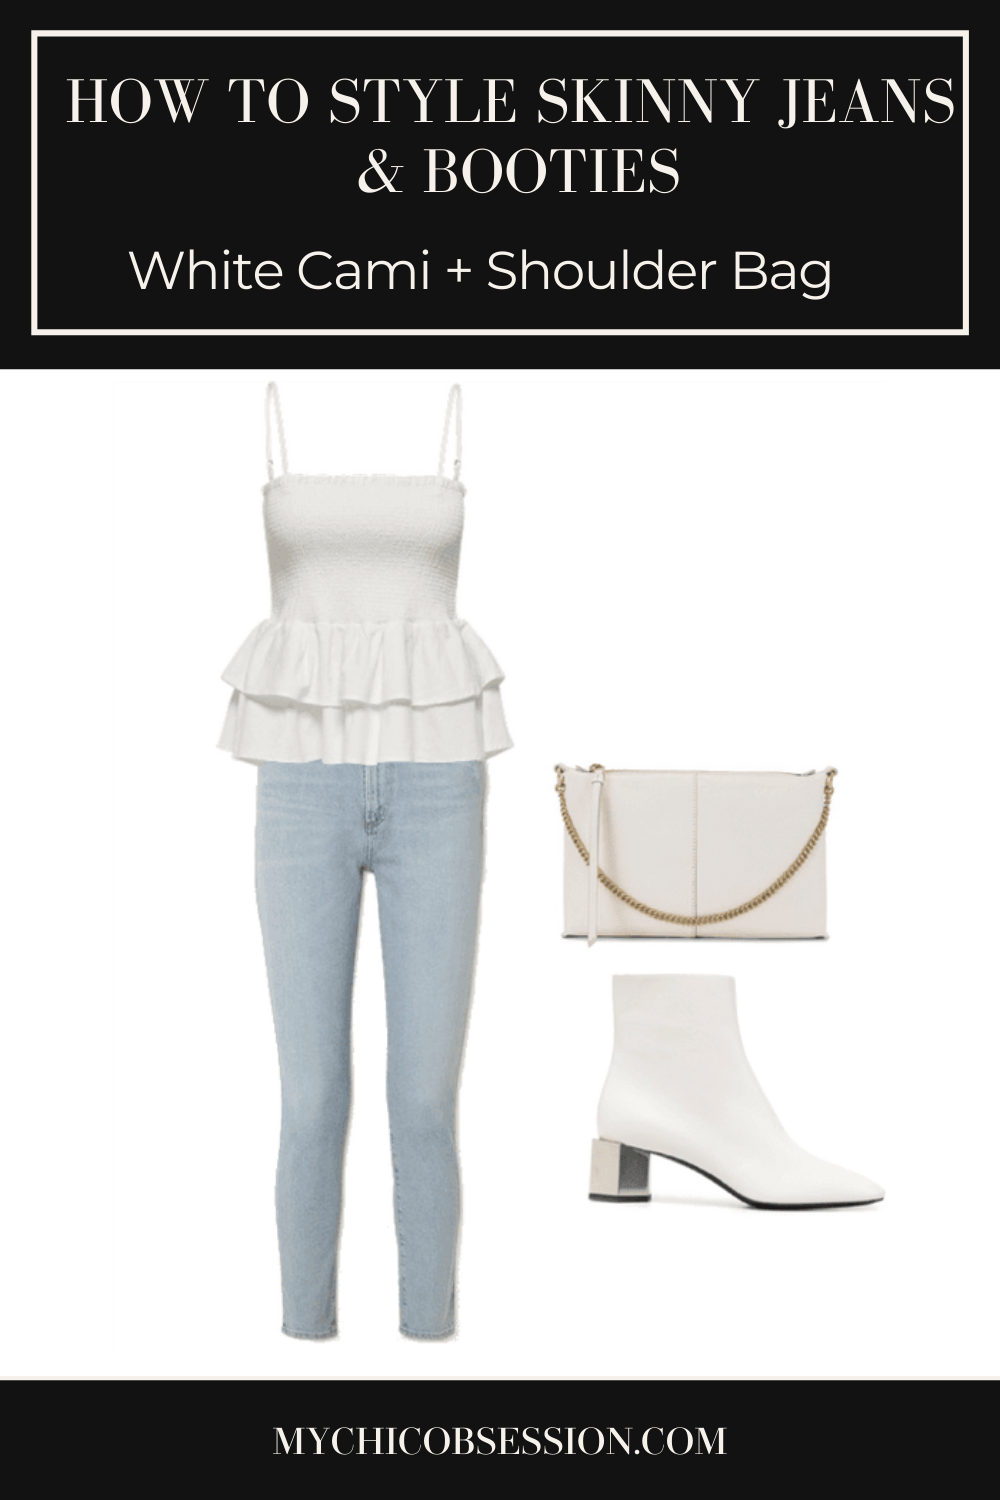 White ruffle peplum camisole top, white ankle boots and white shoulder bag